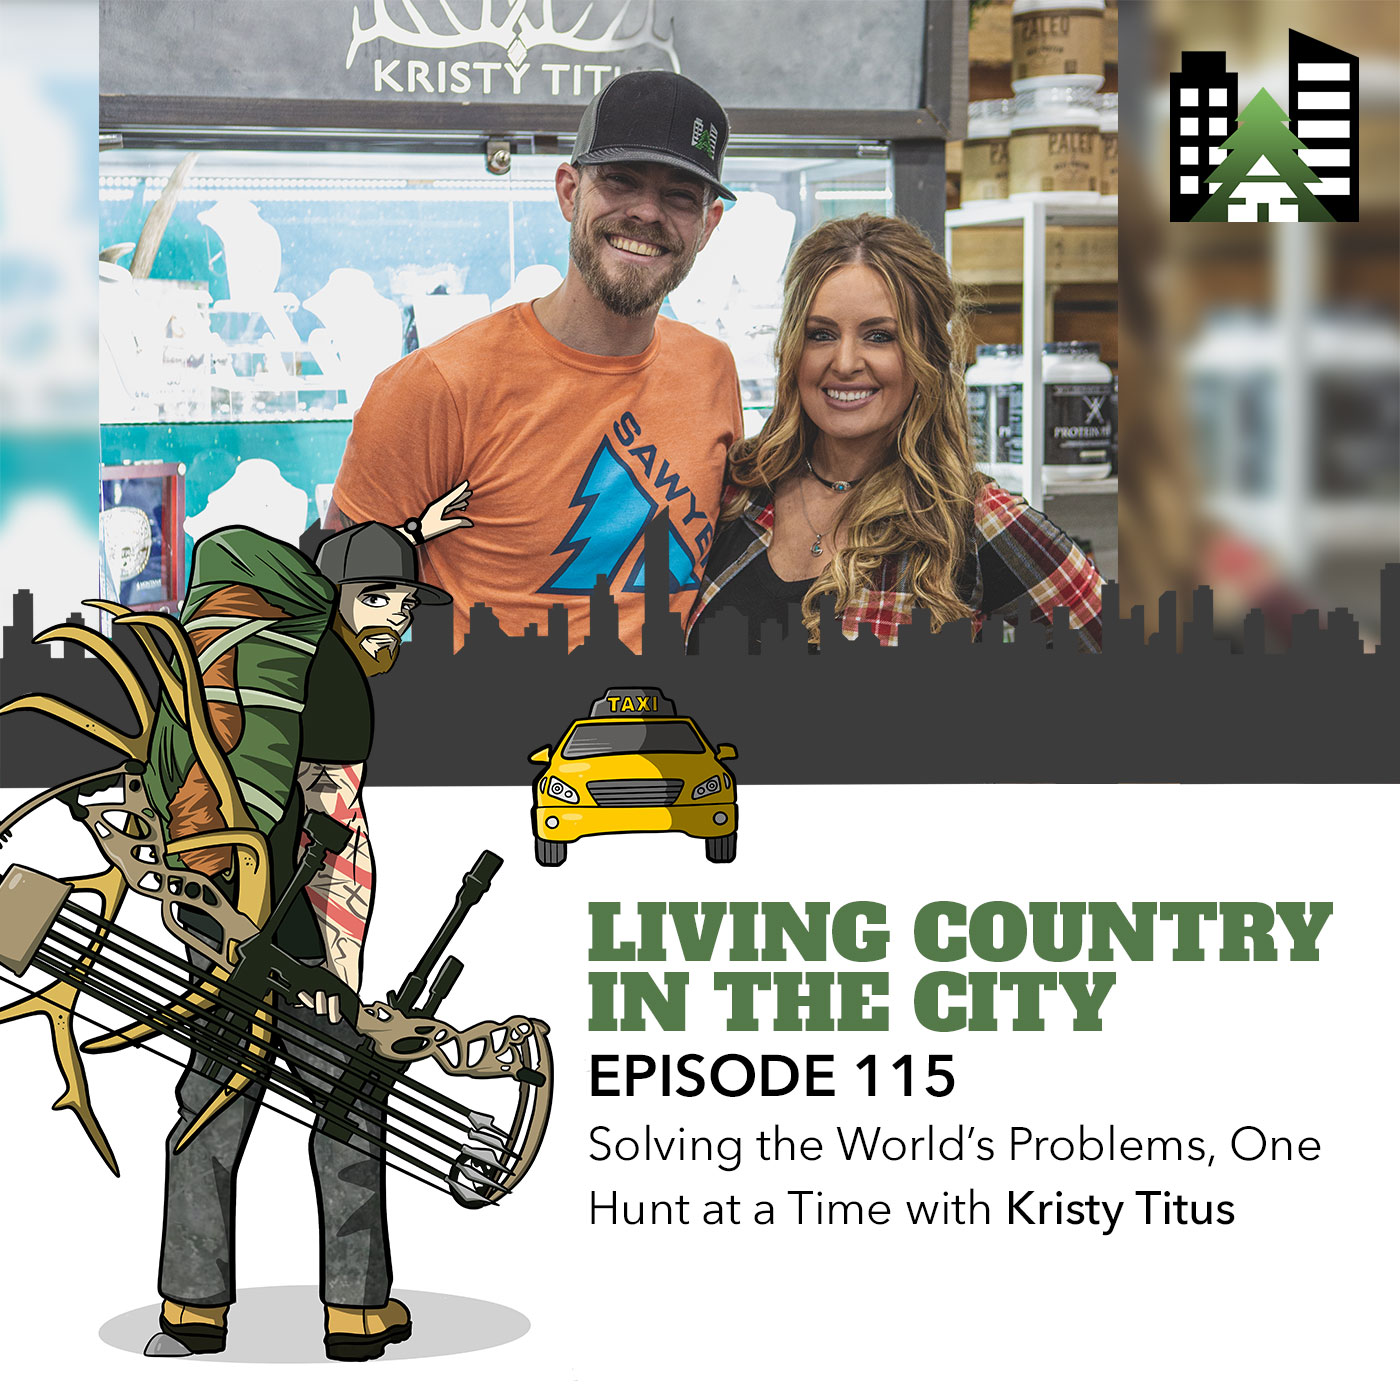 Living Country in the City - Episode 115 - Solving the World's Problems, One Hunt at a Time with Kristy Titus